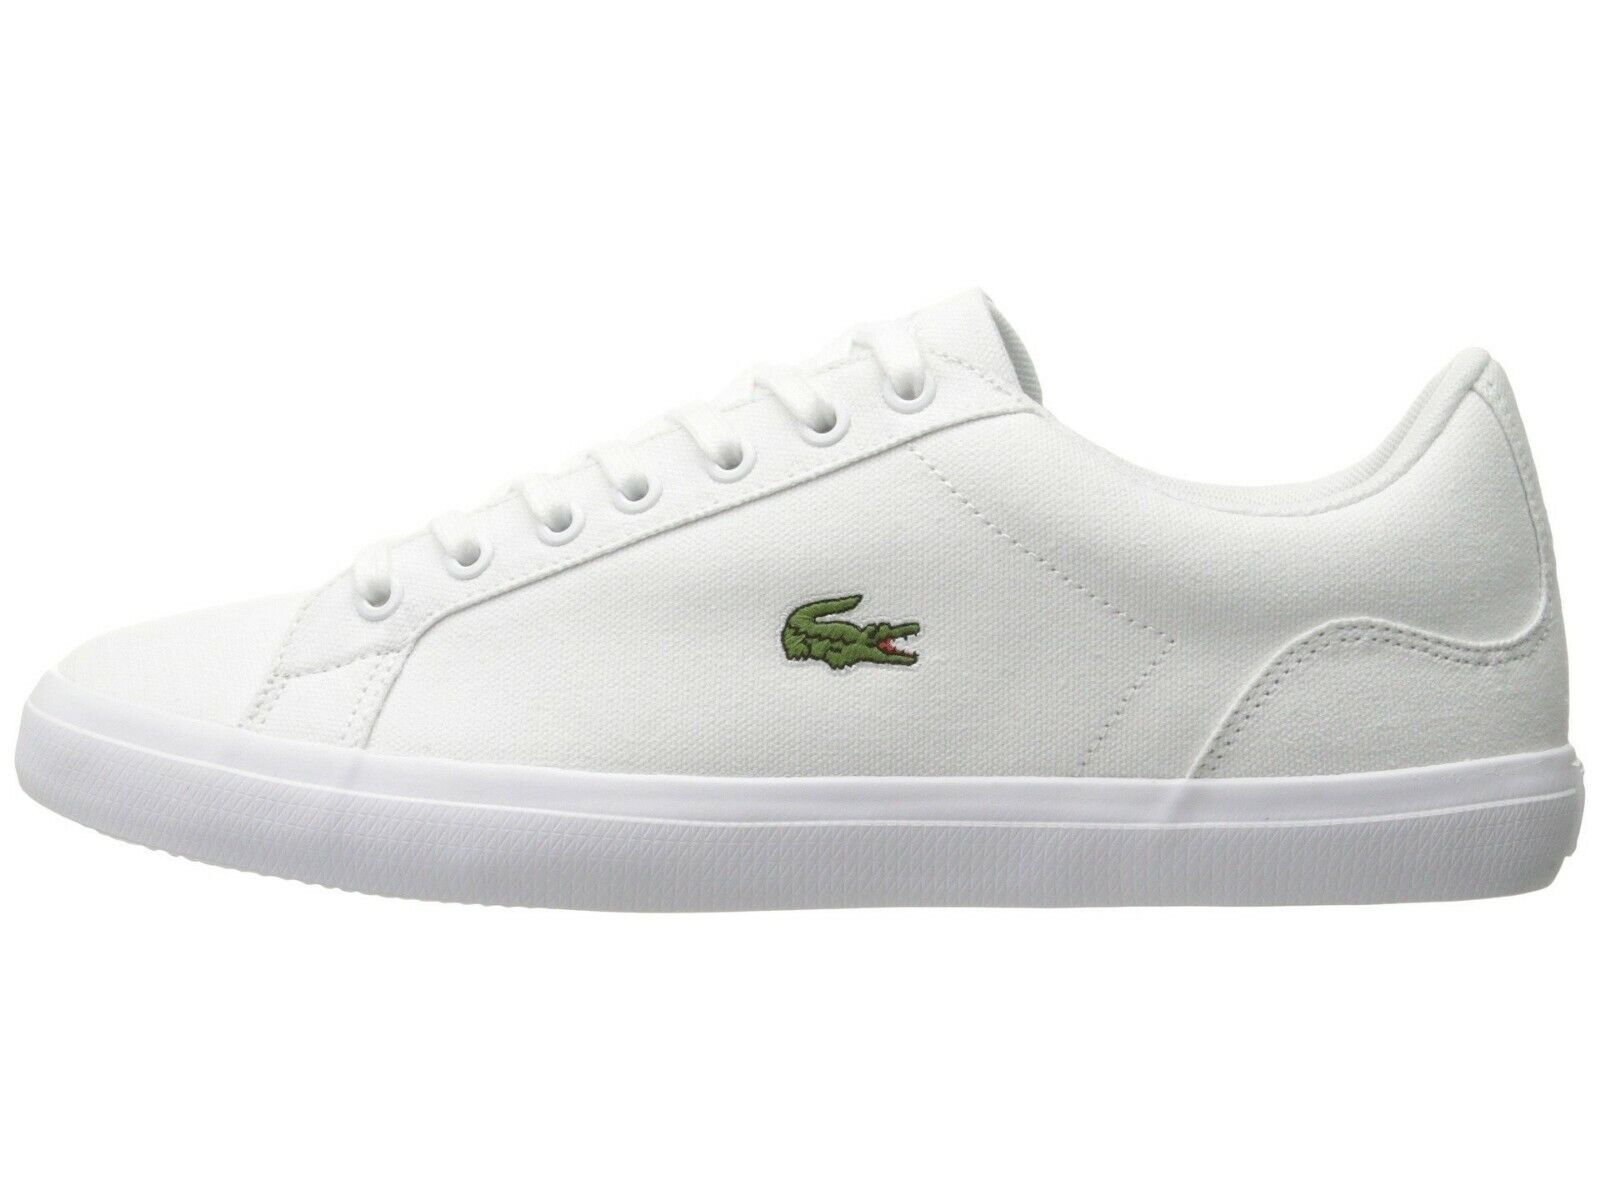 Lacoste Lerond BL 2 Men's Croc Logo Casual Slip On Loafer shoes Sneakers White